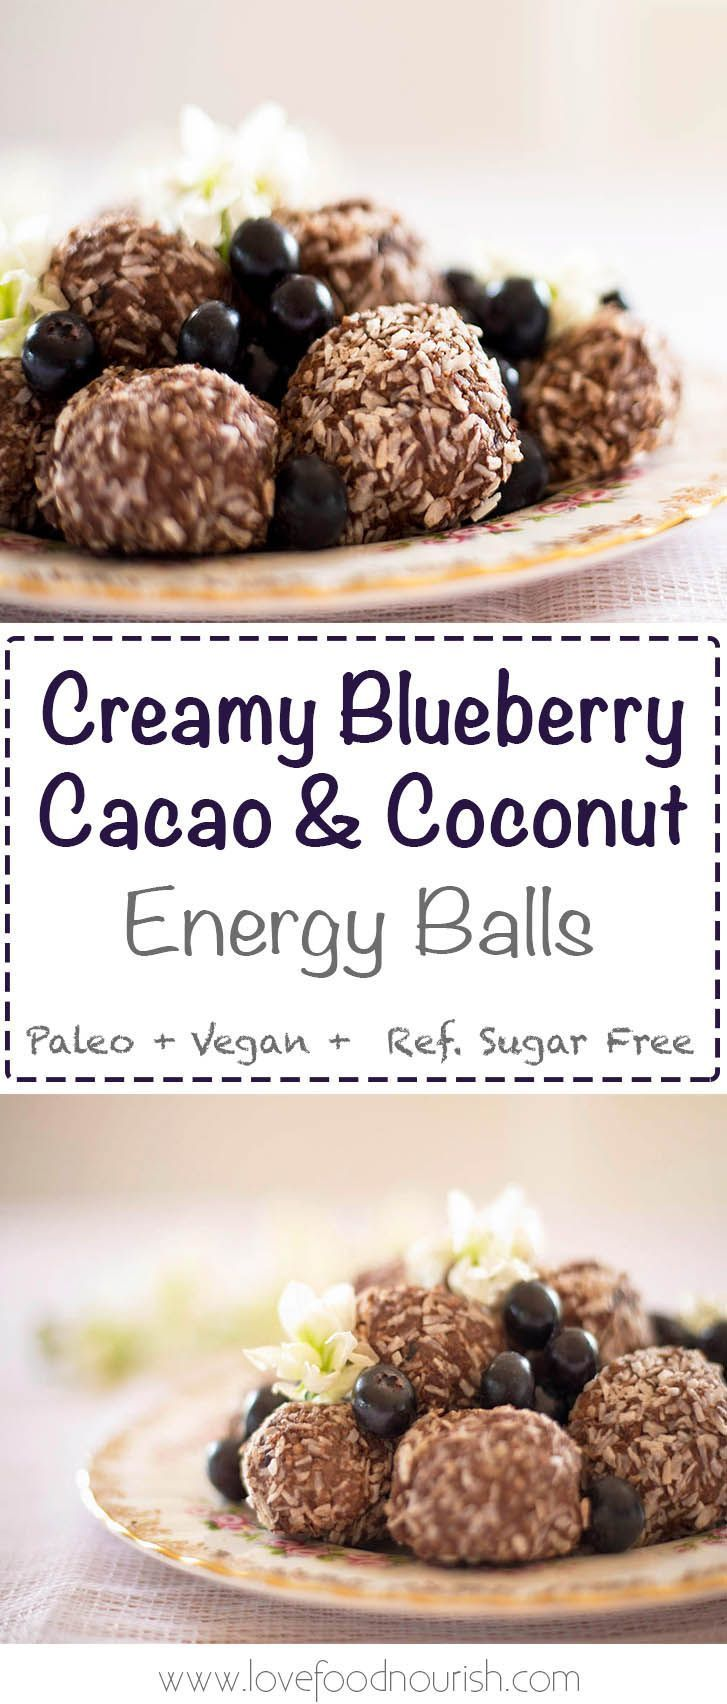 Creamy Blueberry Bliss Balls with Cacao & Coconut - A healthy and delicious sweet treat that will give you a burst of energy. #blissballs #paleo #glutenfree #dairyfree #paleosnack #energyballs #blueberries #healthysnacks #paleosnacks #glutenfreesnacks #vegan